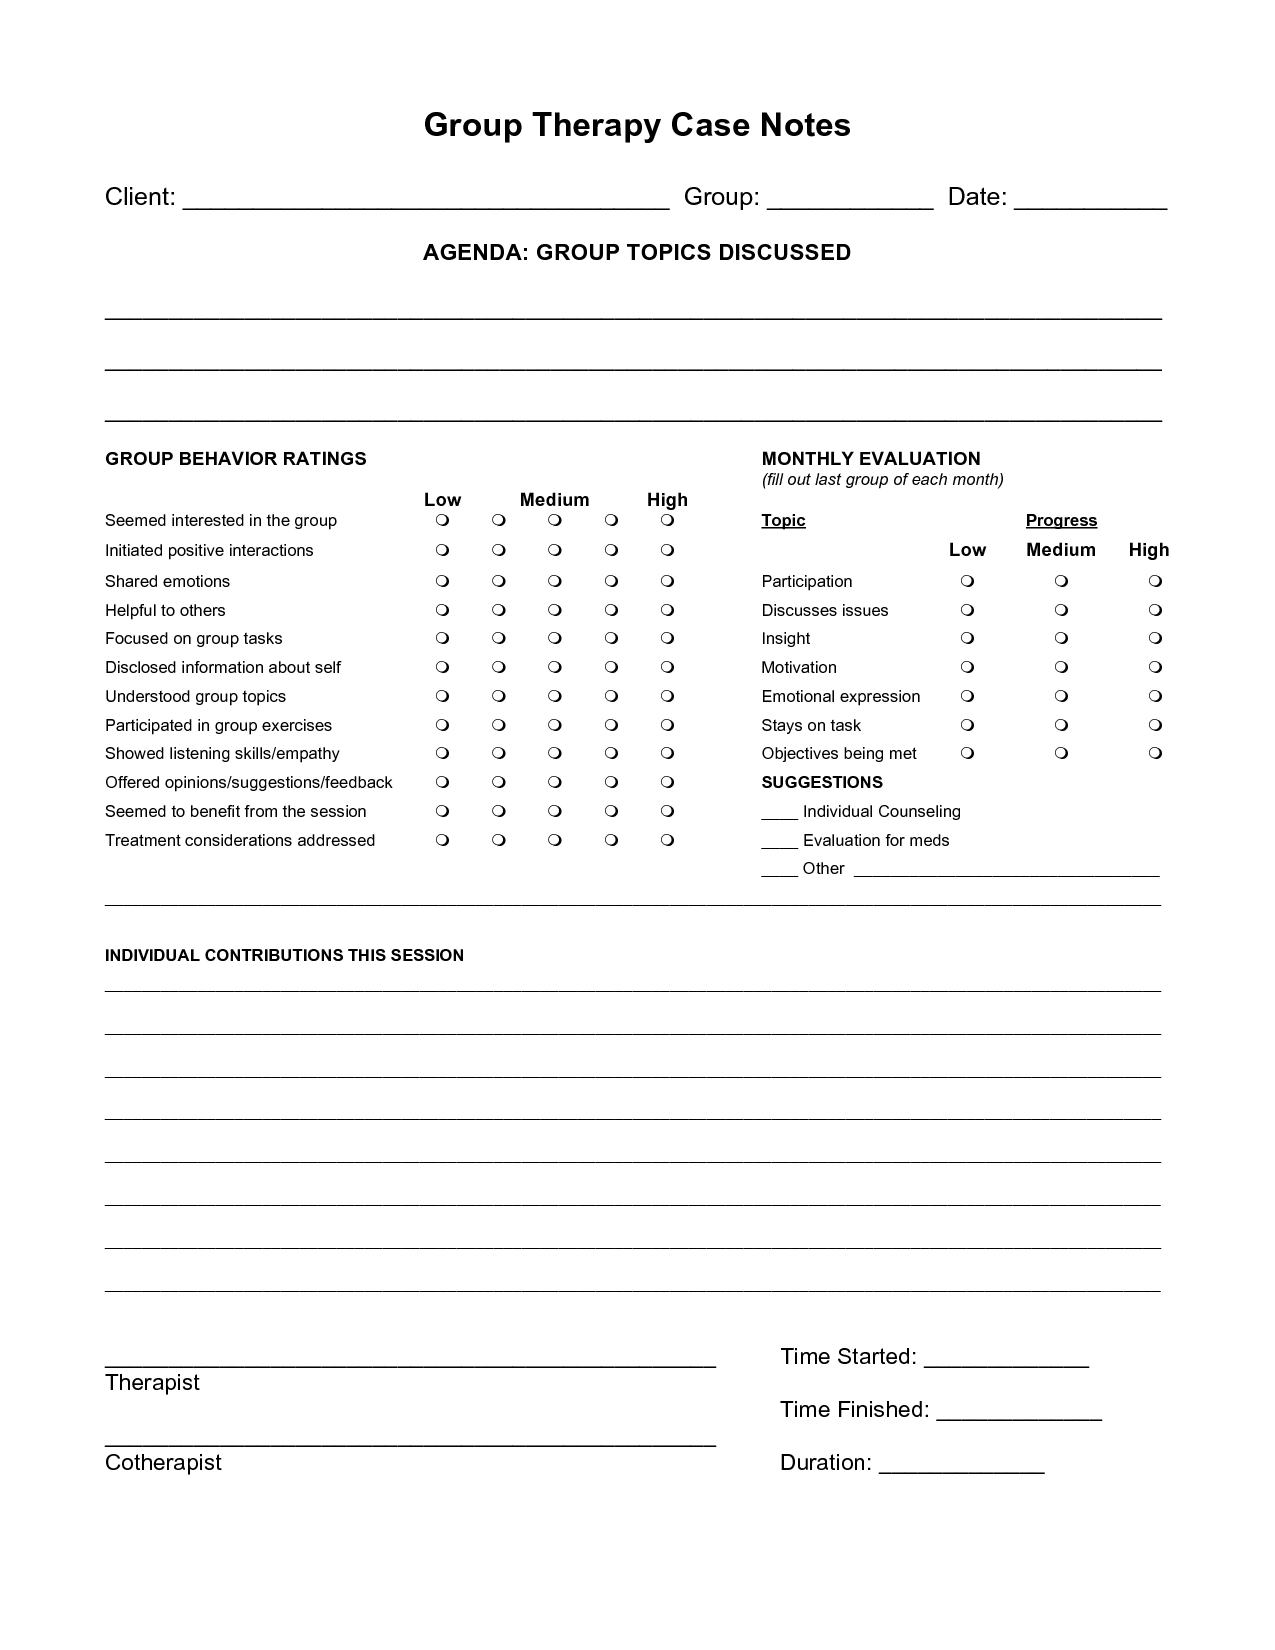 Free Case Note Templates